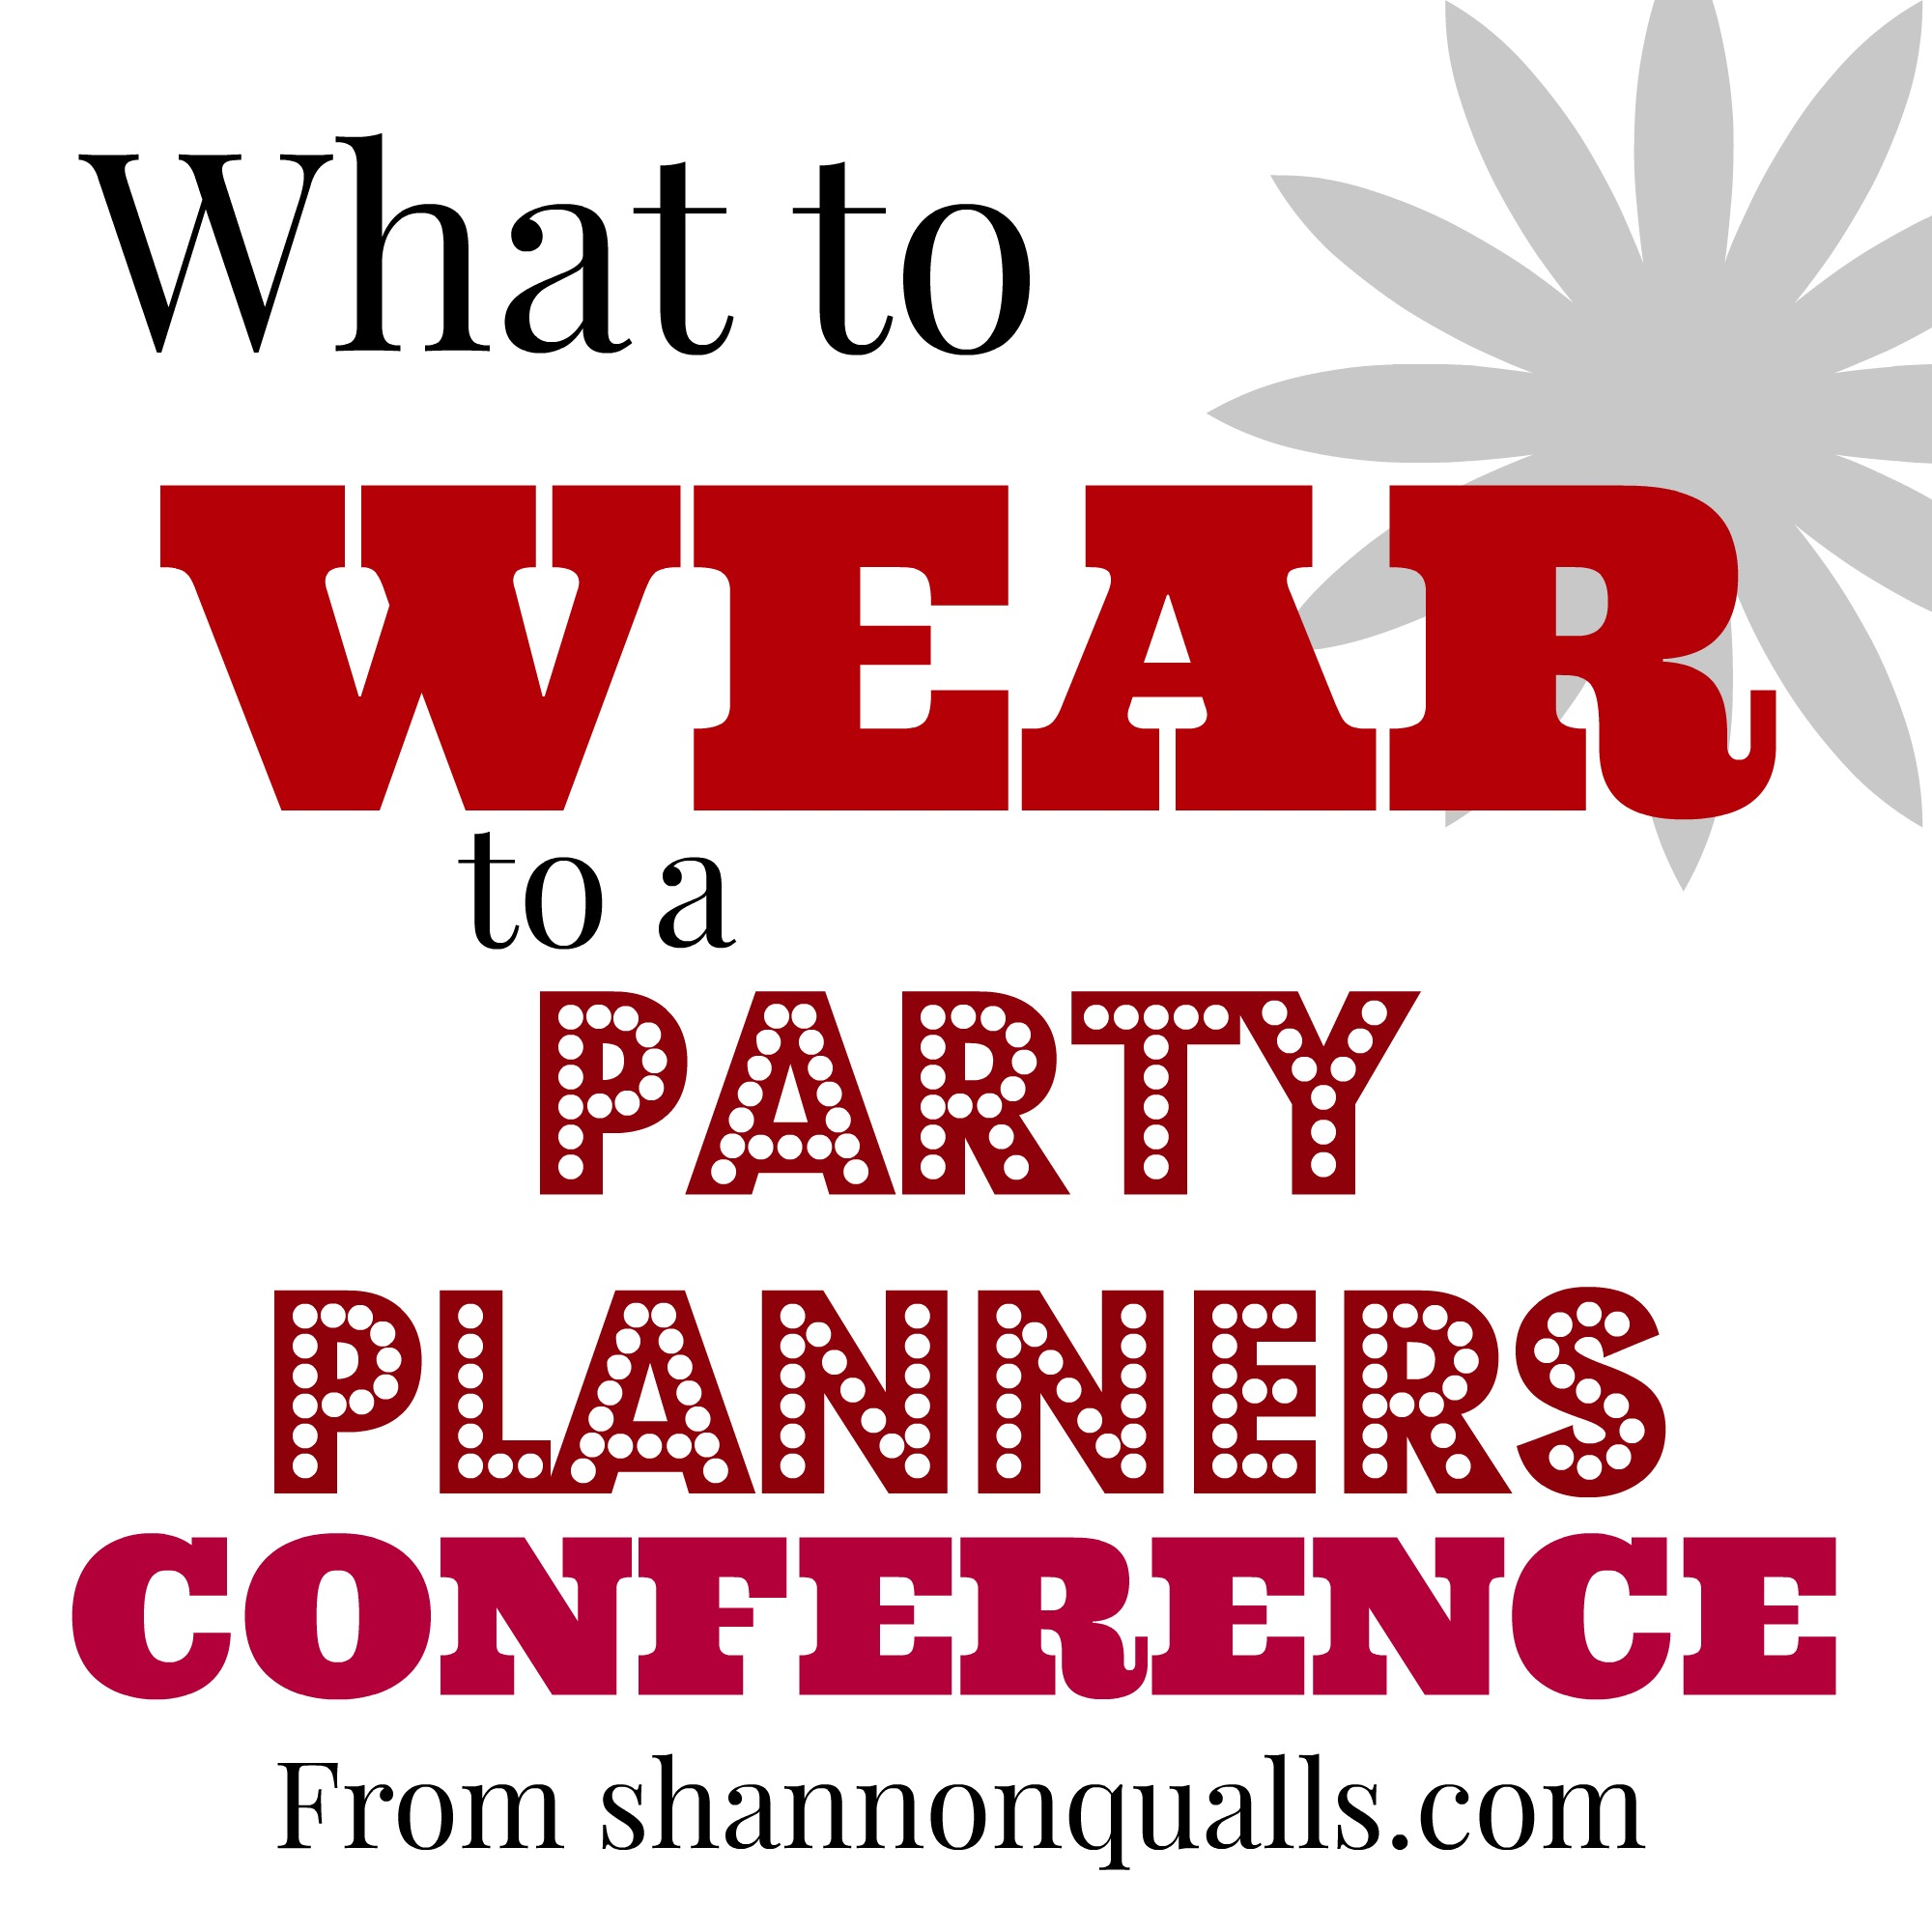 BASH What to Wear from shannonqualls.com